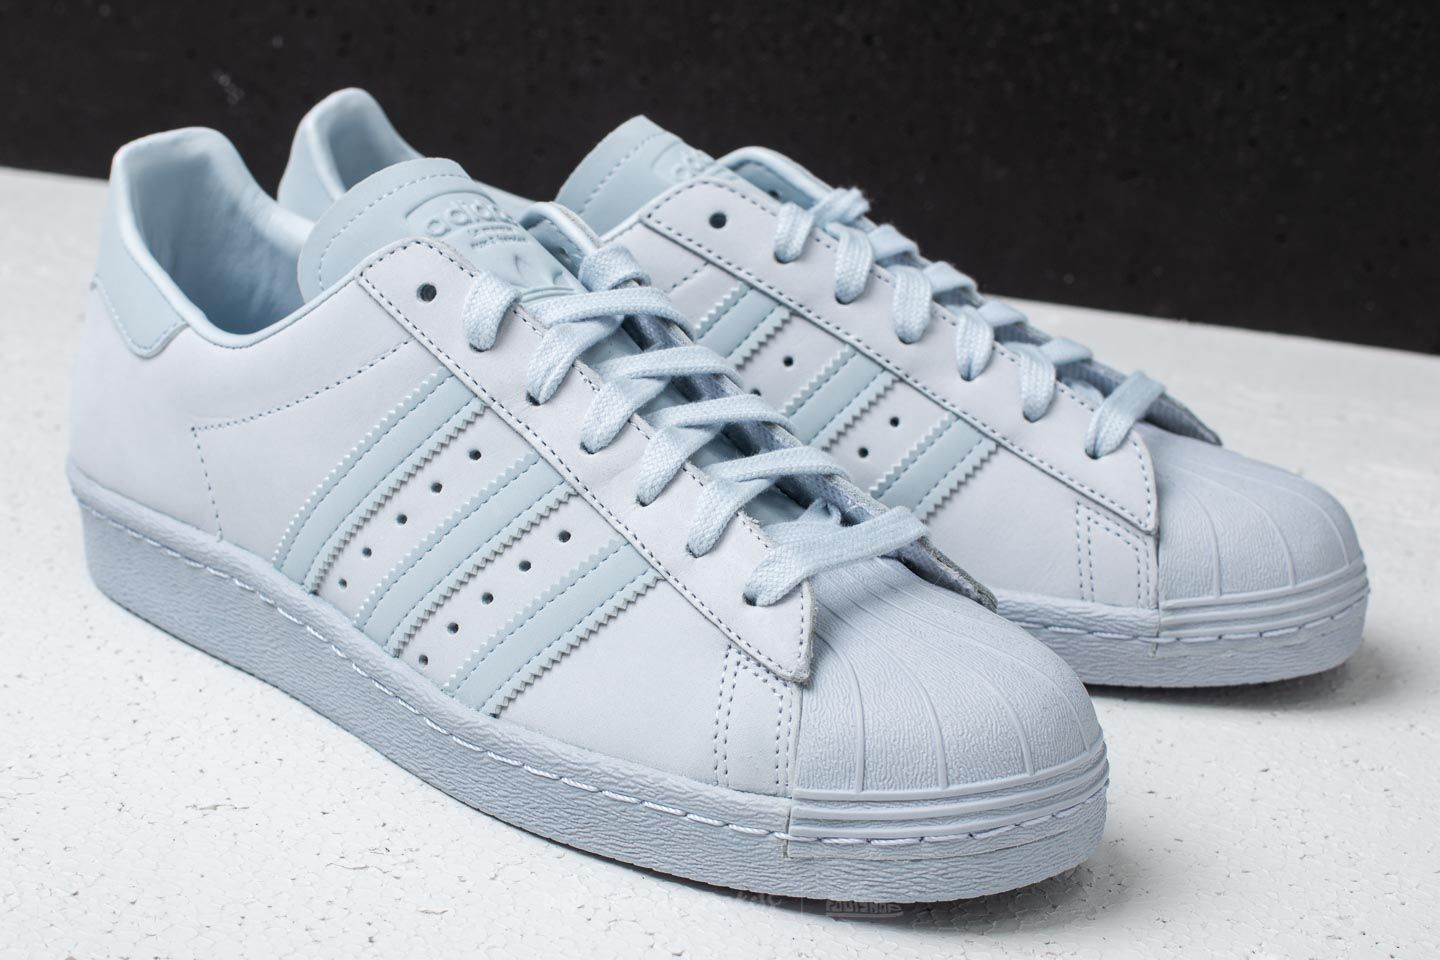 buy popular 4a2e9 96e9f adidas Superstar 80s Aero Blue/Aero Blue/Aero Blue | Footshop